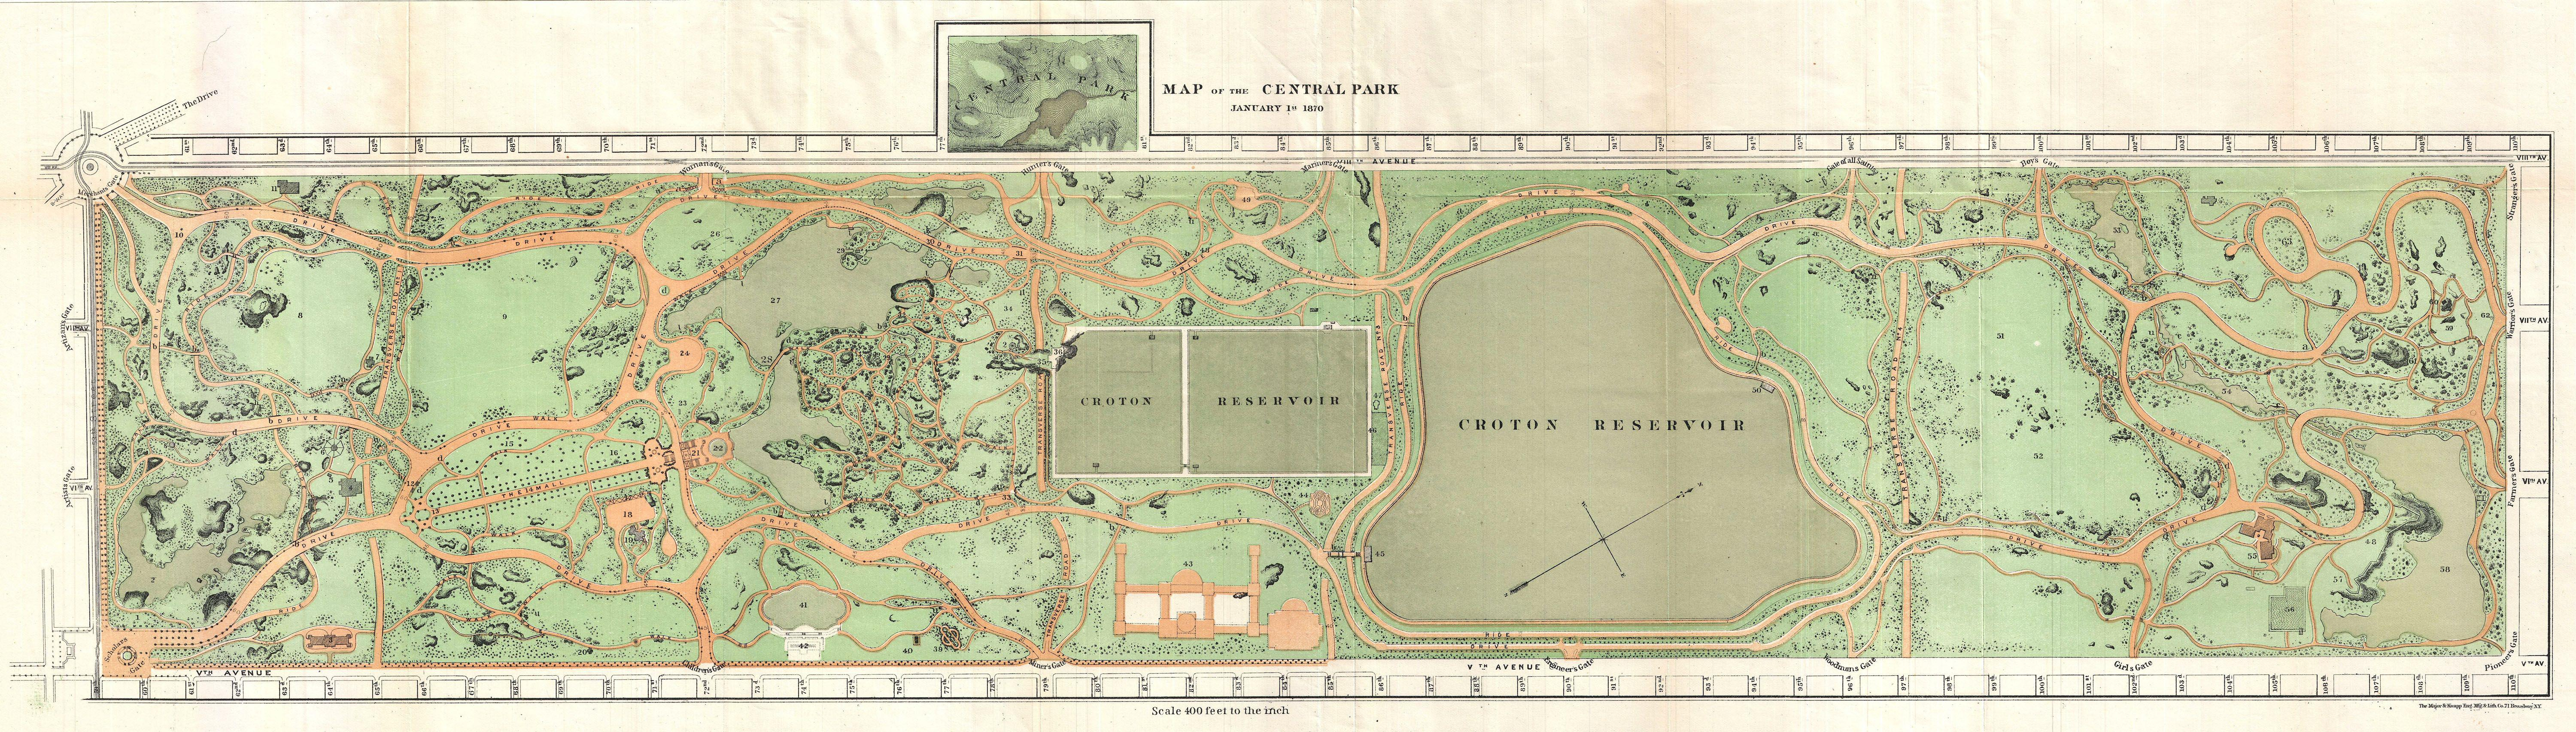 central park maps | New York City Historical Blog on